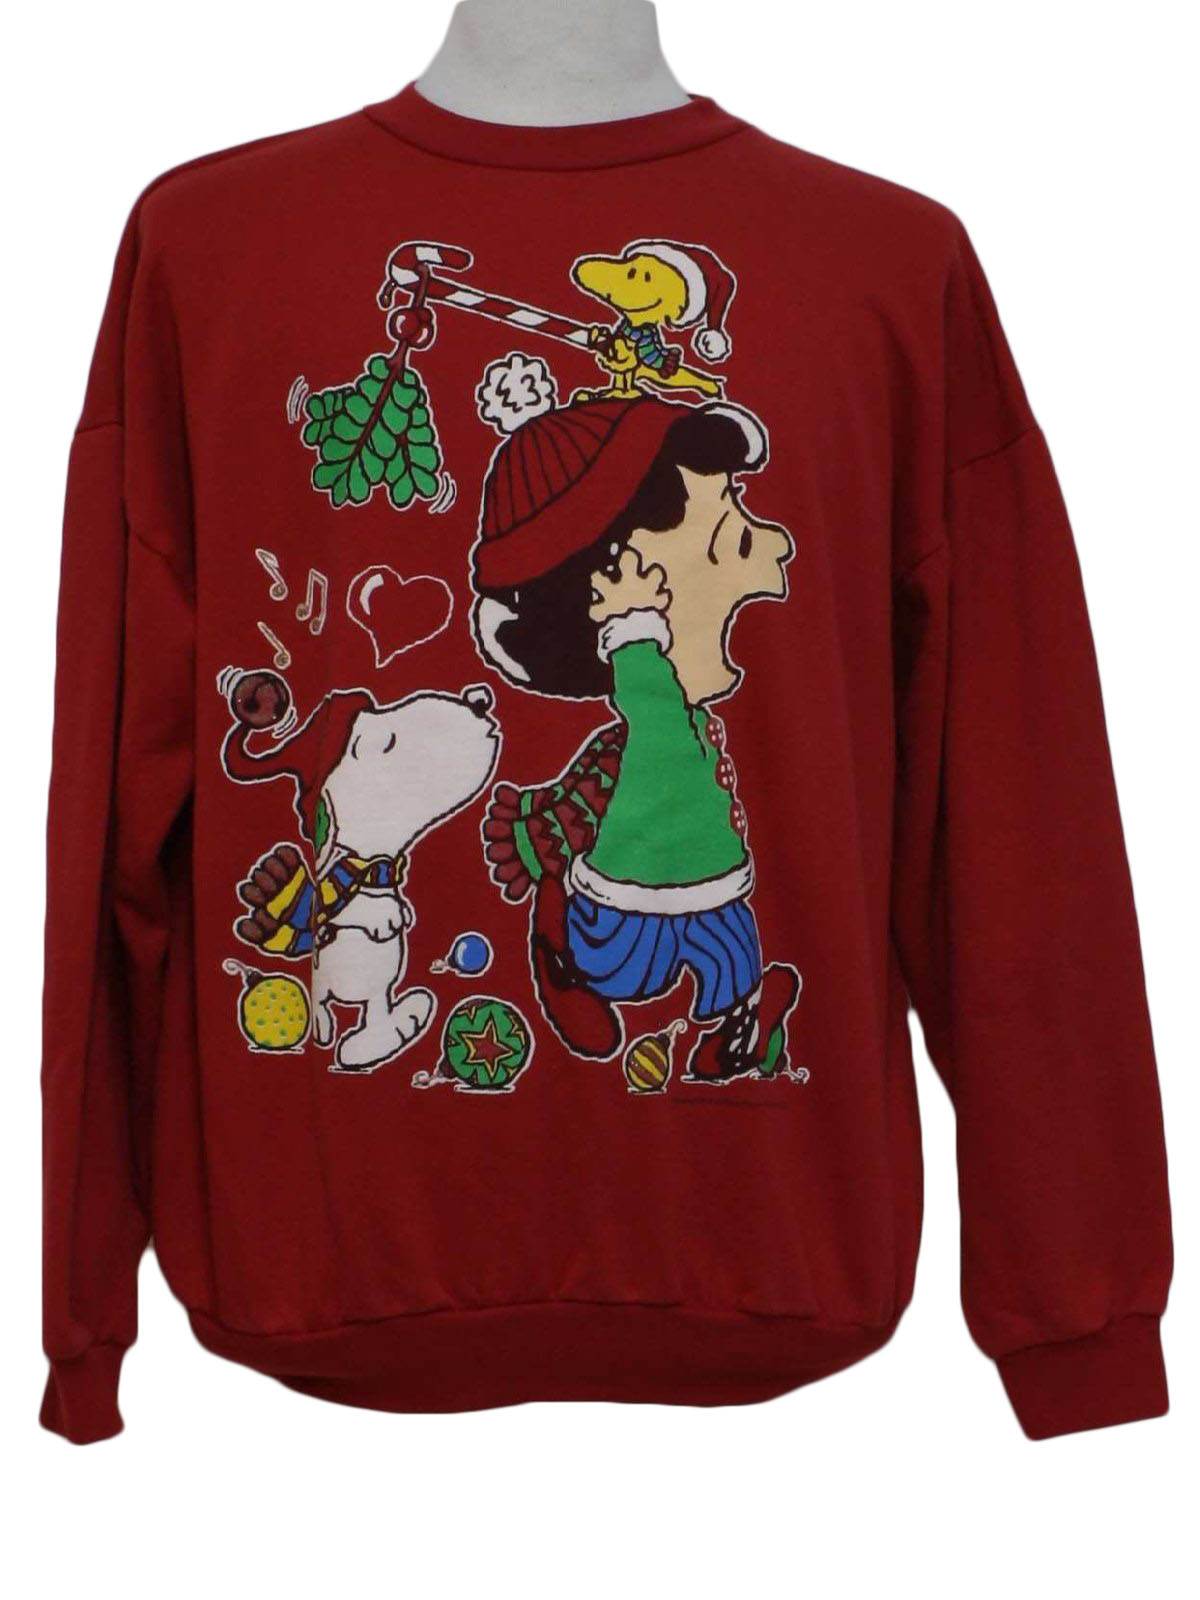 80s vintage ugly christmas sweatshirt 80s authentic vintage peanuts unisex red background ramie cotton blend long sleeve pullover ugly christmas - Peanuts Christmas Shirt